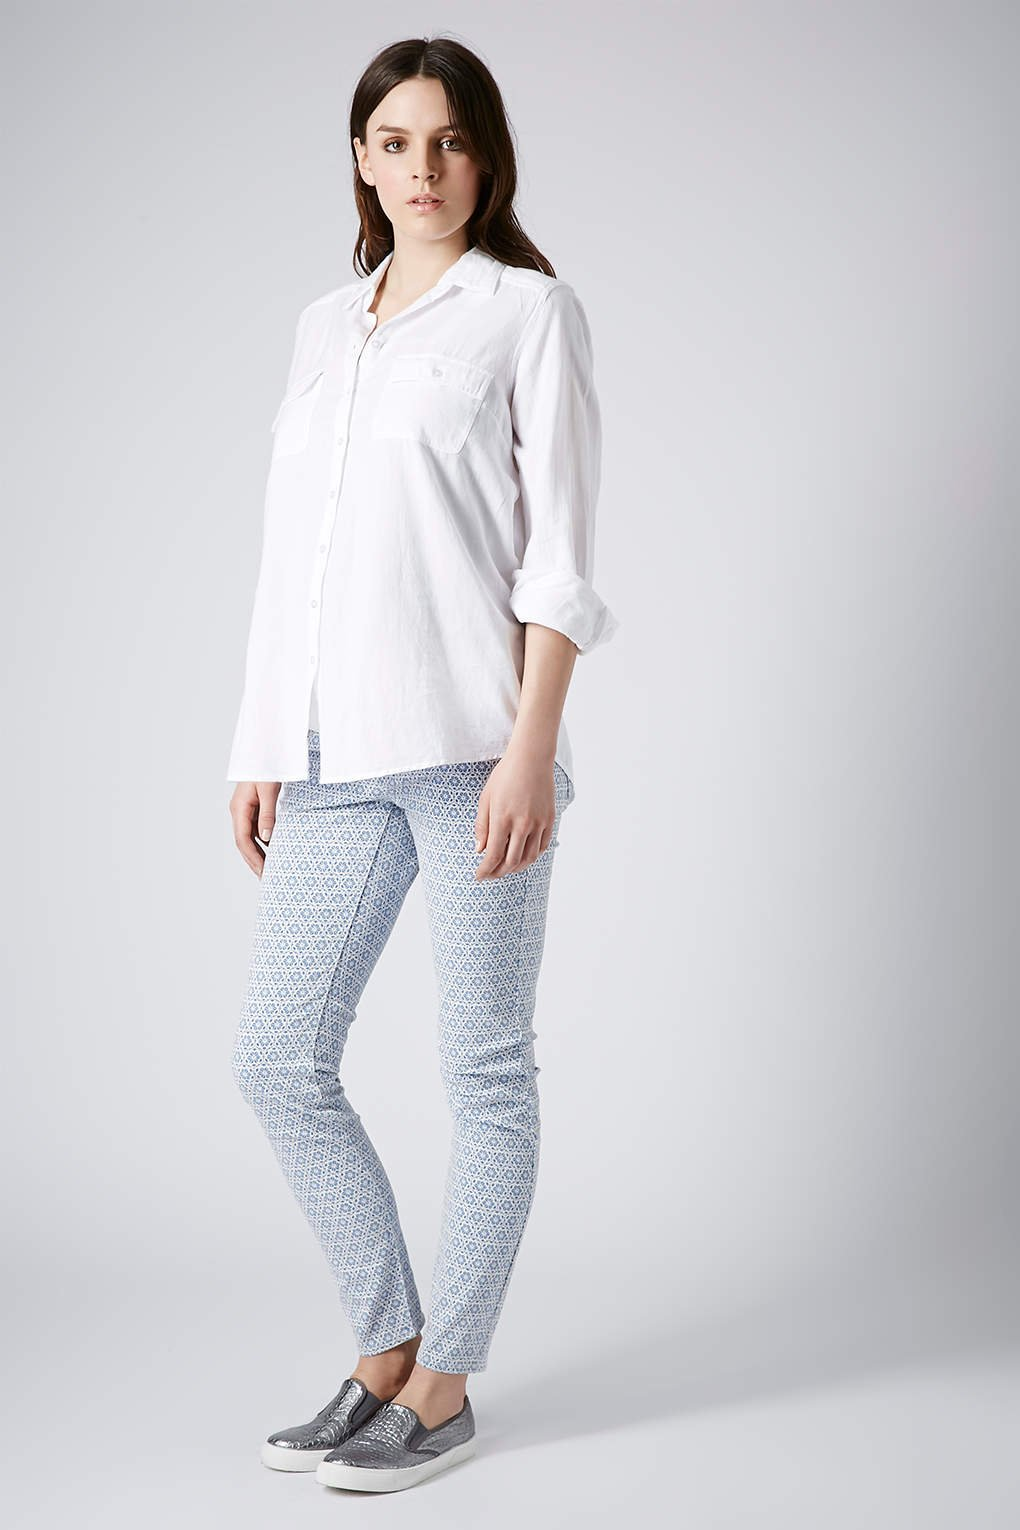 Topshop Maternity Moto Tile Print Leigh Jeans in Blue | Lyst